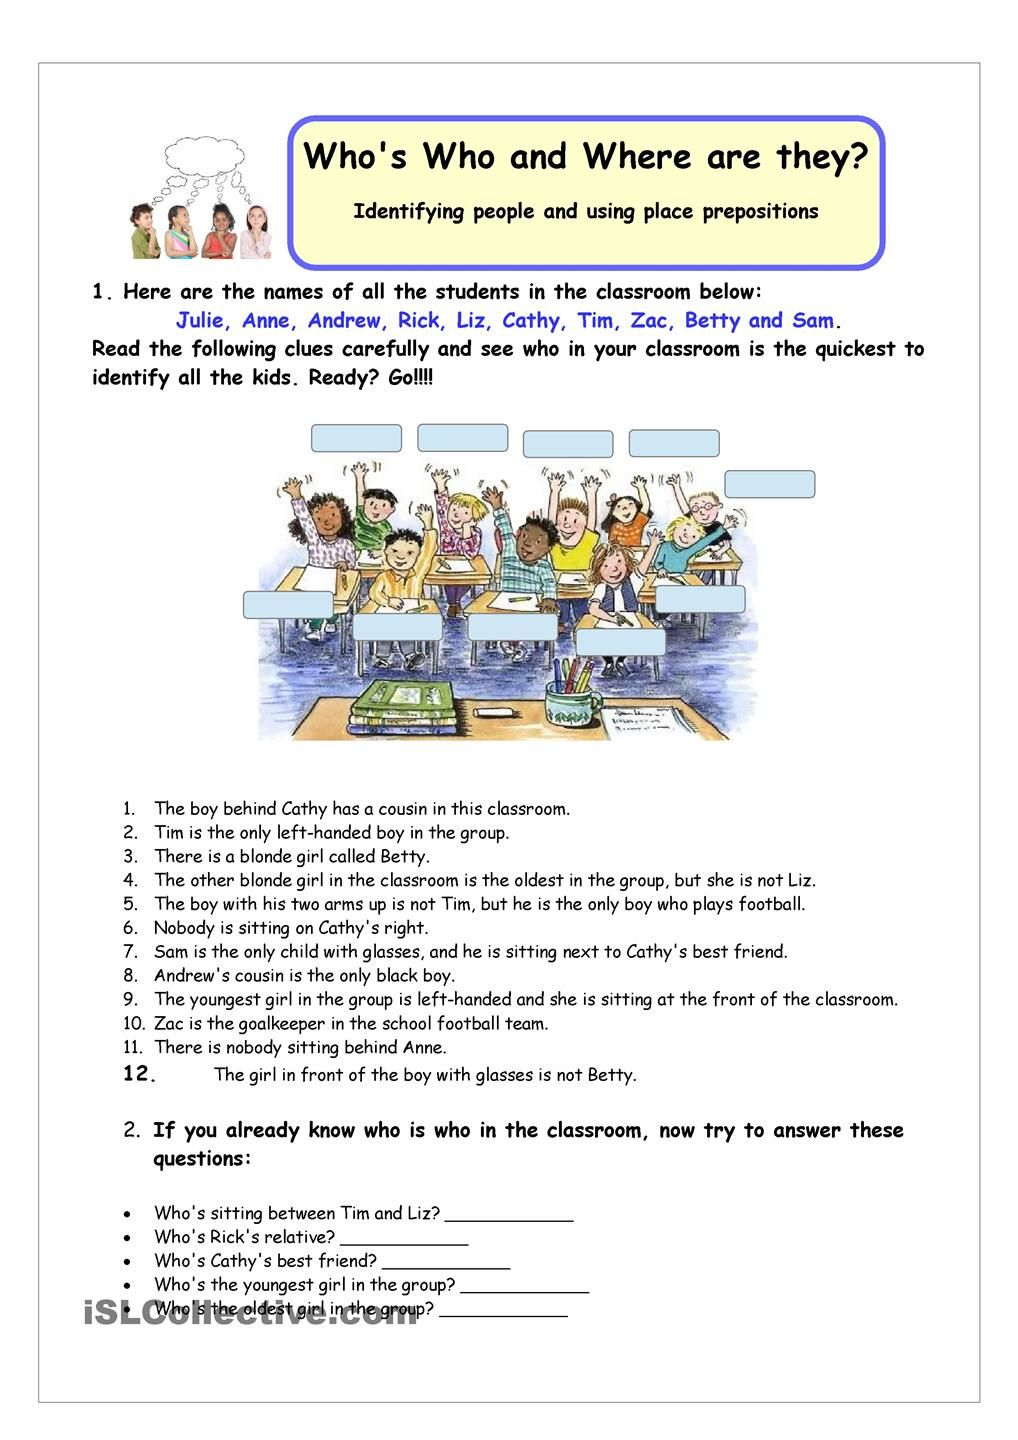 Whos Who and Where are they? | ESL worksheets of the day | Pinterest ...